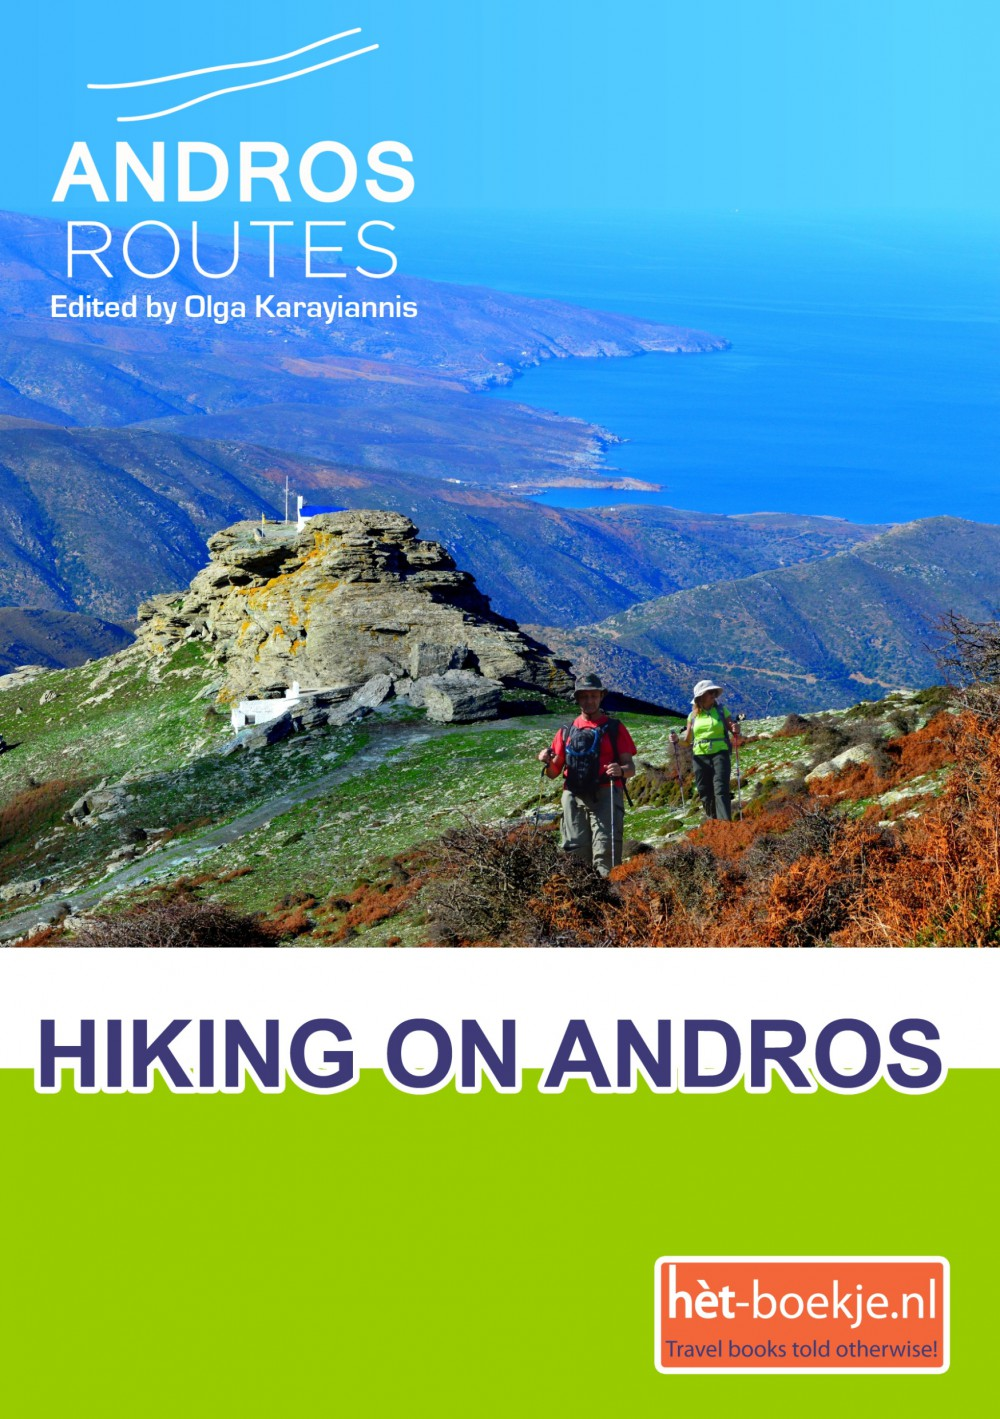 andros-hiking-A5voorkant-GB1